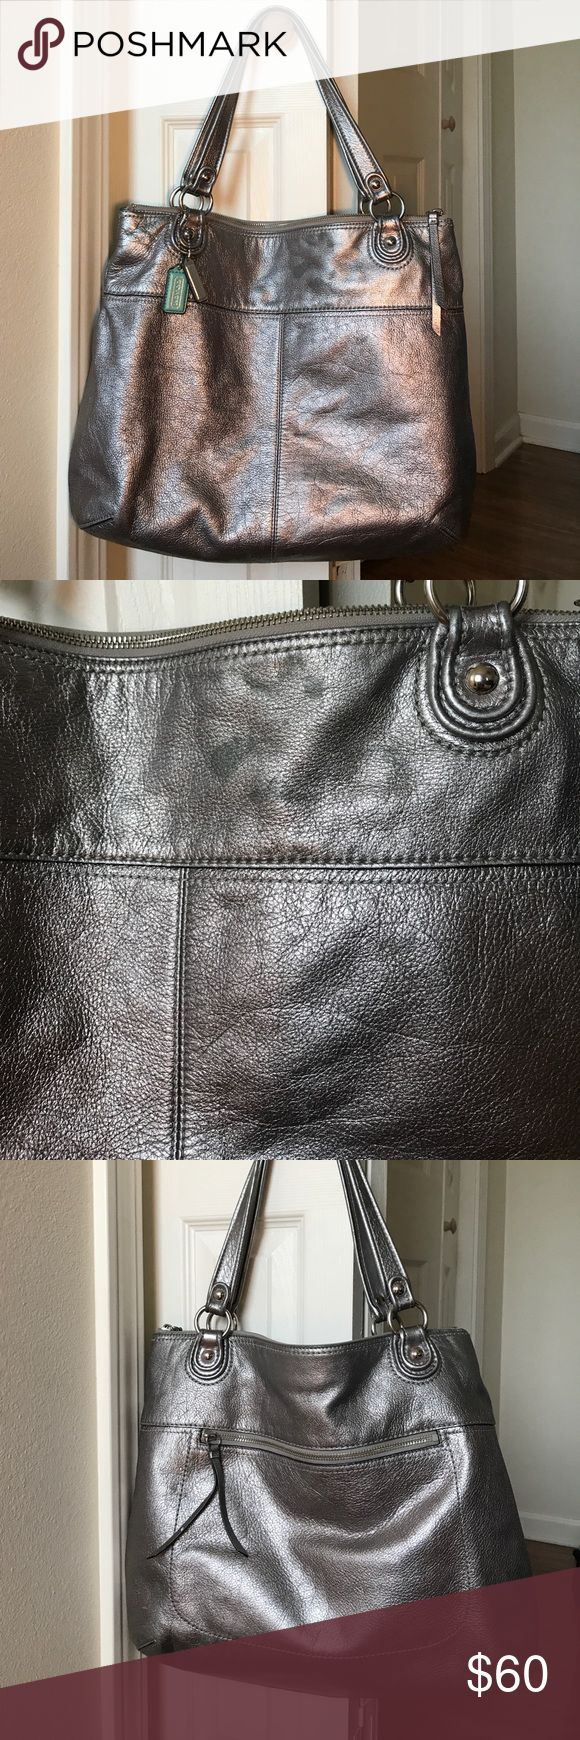 Coach metallic shoulder bag Best purse ever and I wore the heck out of it to be honest. I pulled the linings out to show all the stains and wear. The outside still looks pretty darn good! The wear doesn't show too bad I think because of the color and the way the the leather wrinkles naturally. Some spots in front top, see pics for all signs of wear! Open to reasonable offers. Coach Bags Shoulder Bags